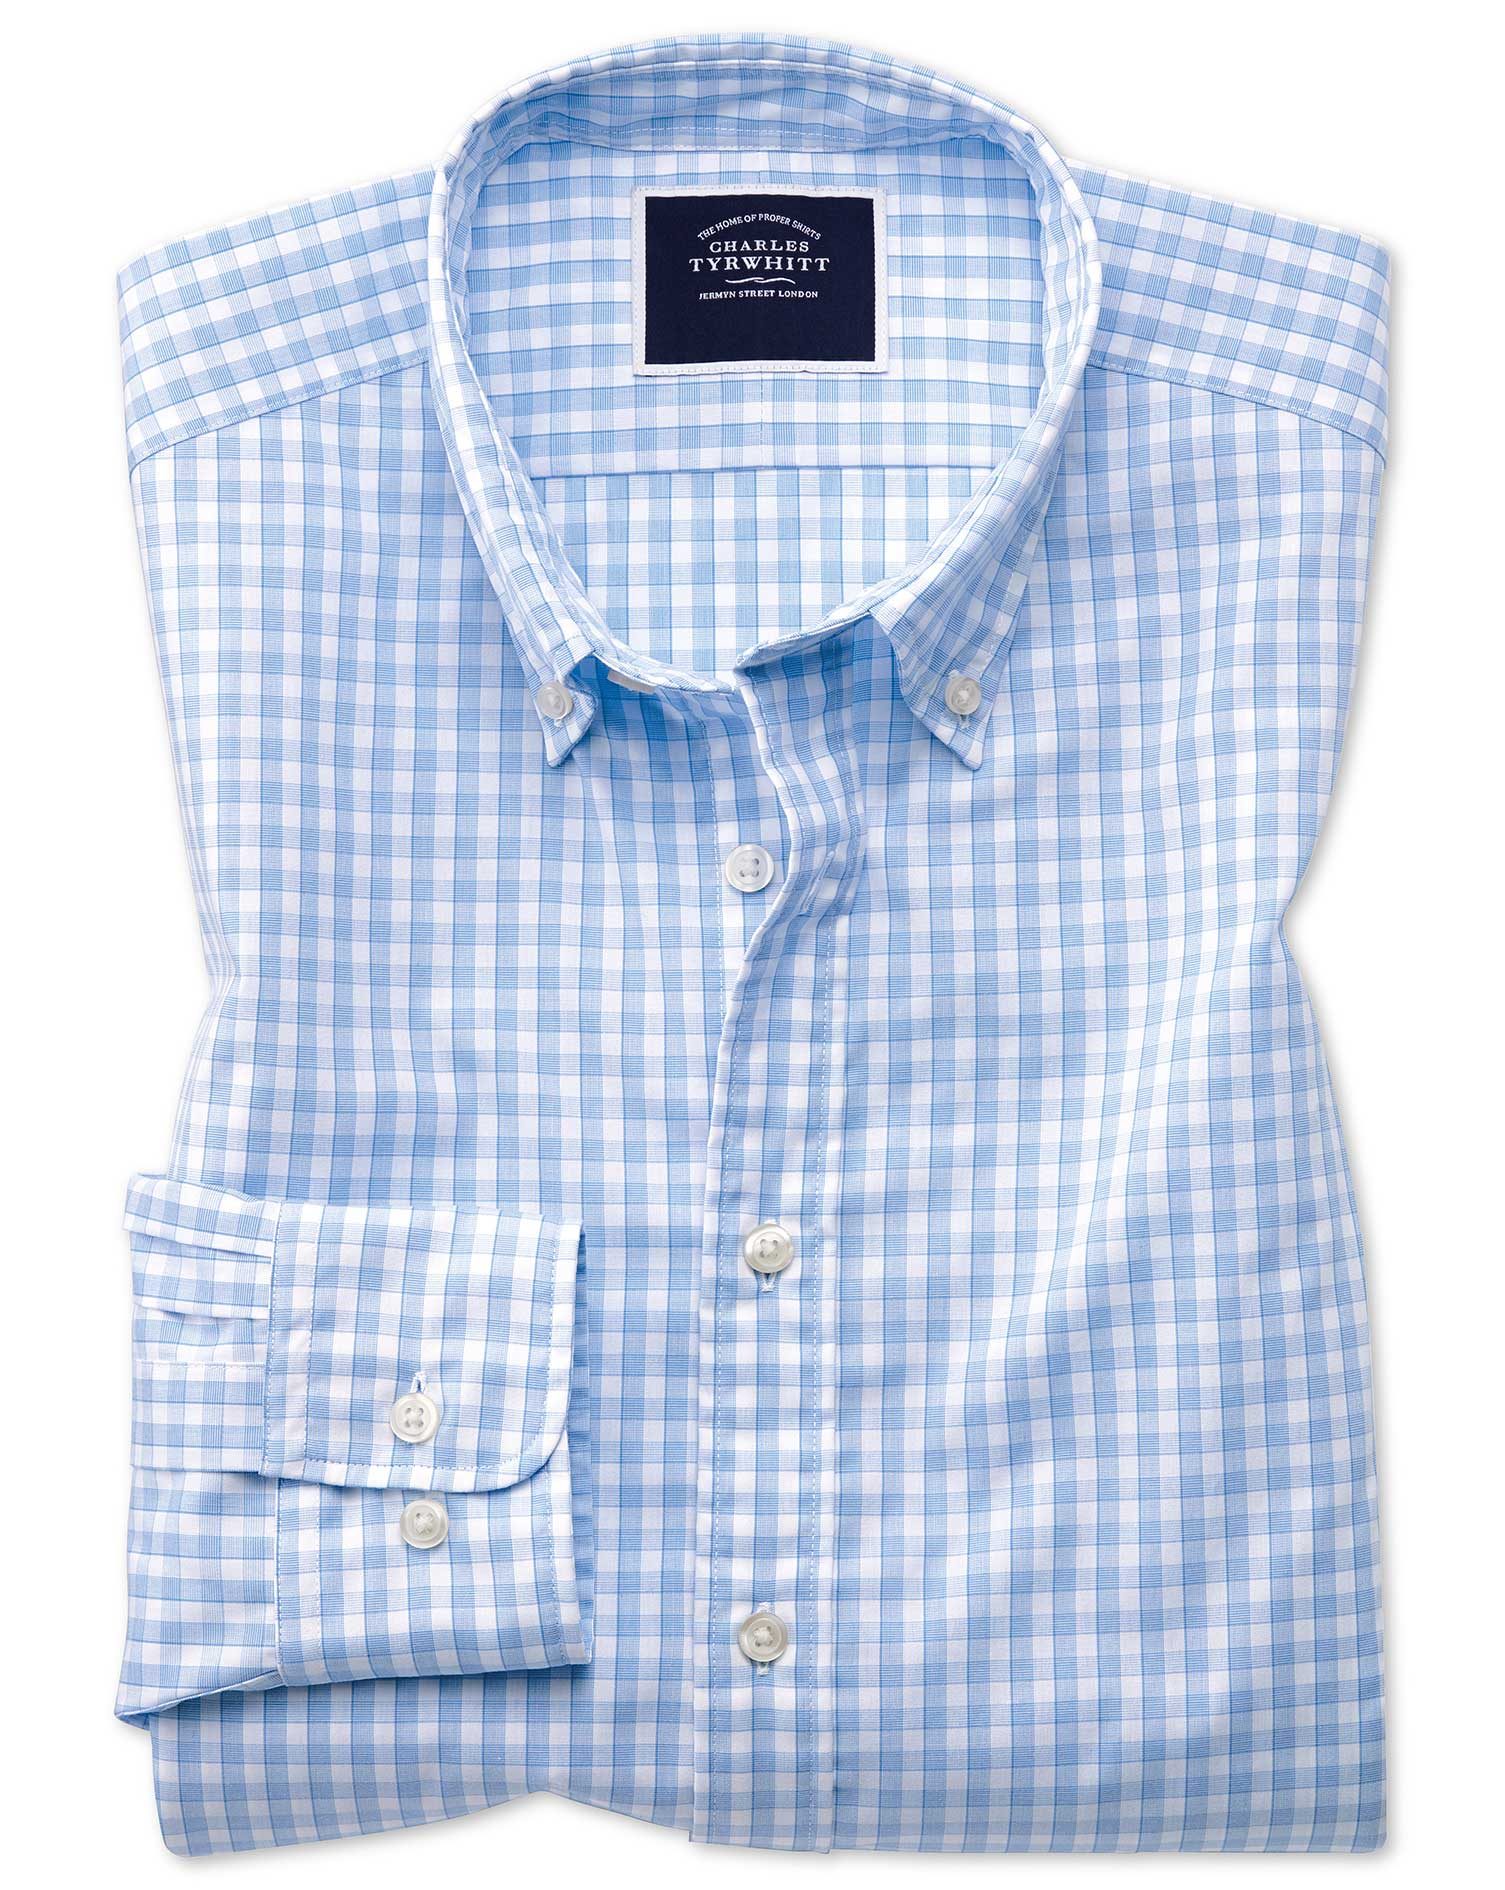 Cotton Extra Slim Fit Sky Blue Gingham Soft Washed Non-Iron Tyrwhitt Cool Shirt